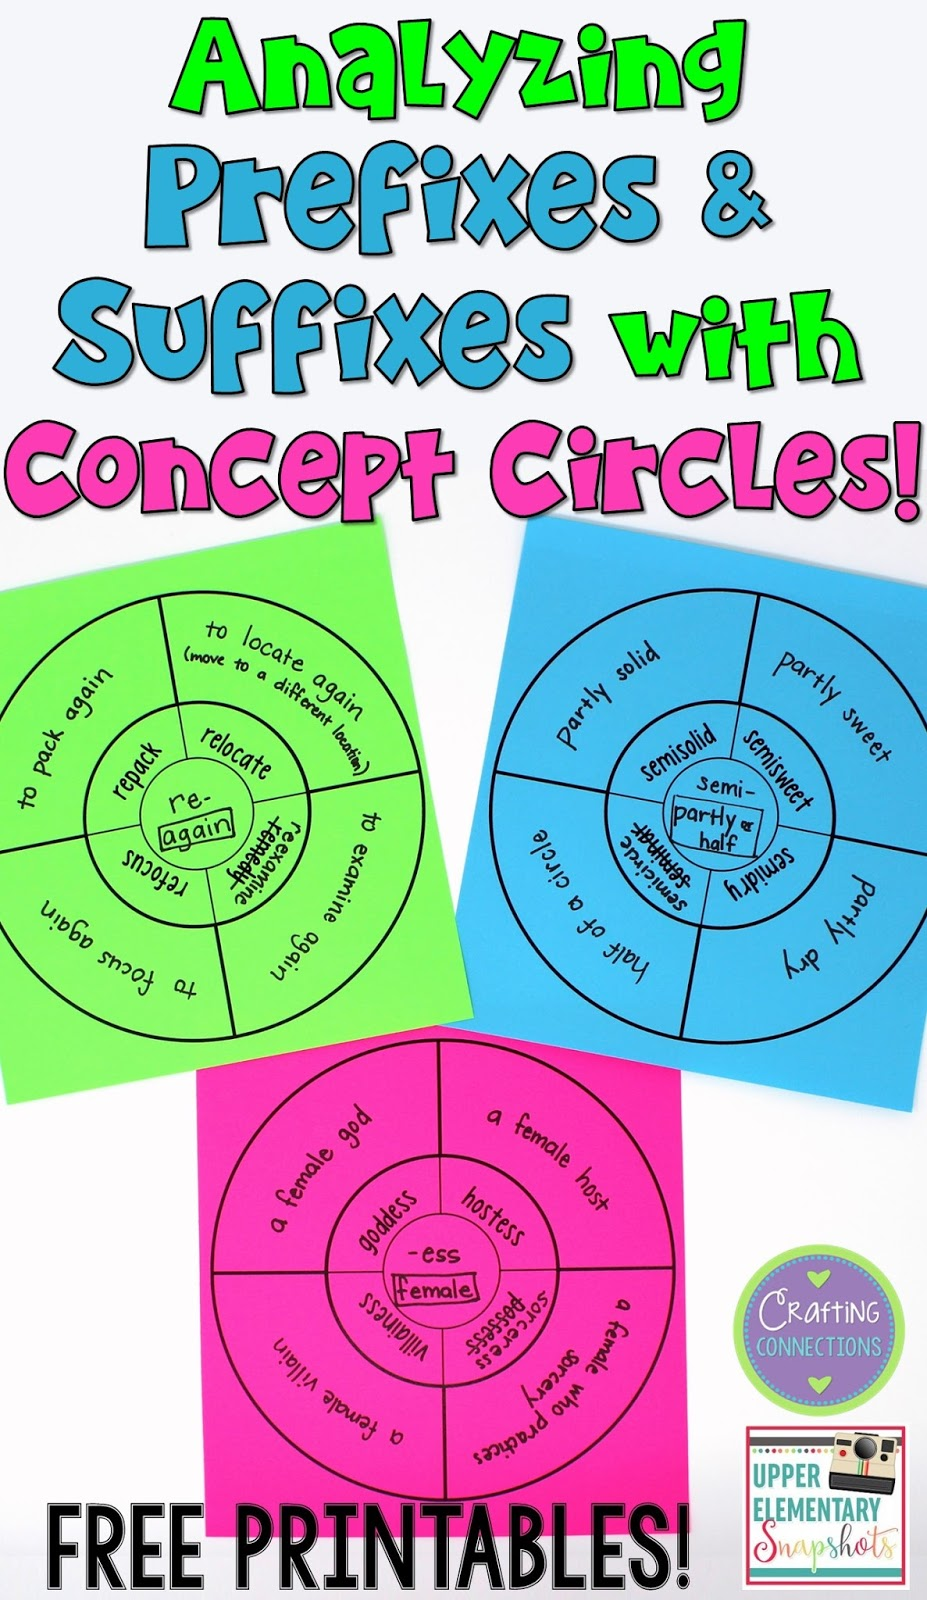 hight resolution of Using Concept Circles to Analyze Prefixes and Suffixes   Upper Elementary  Snapshots